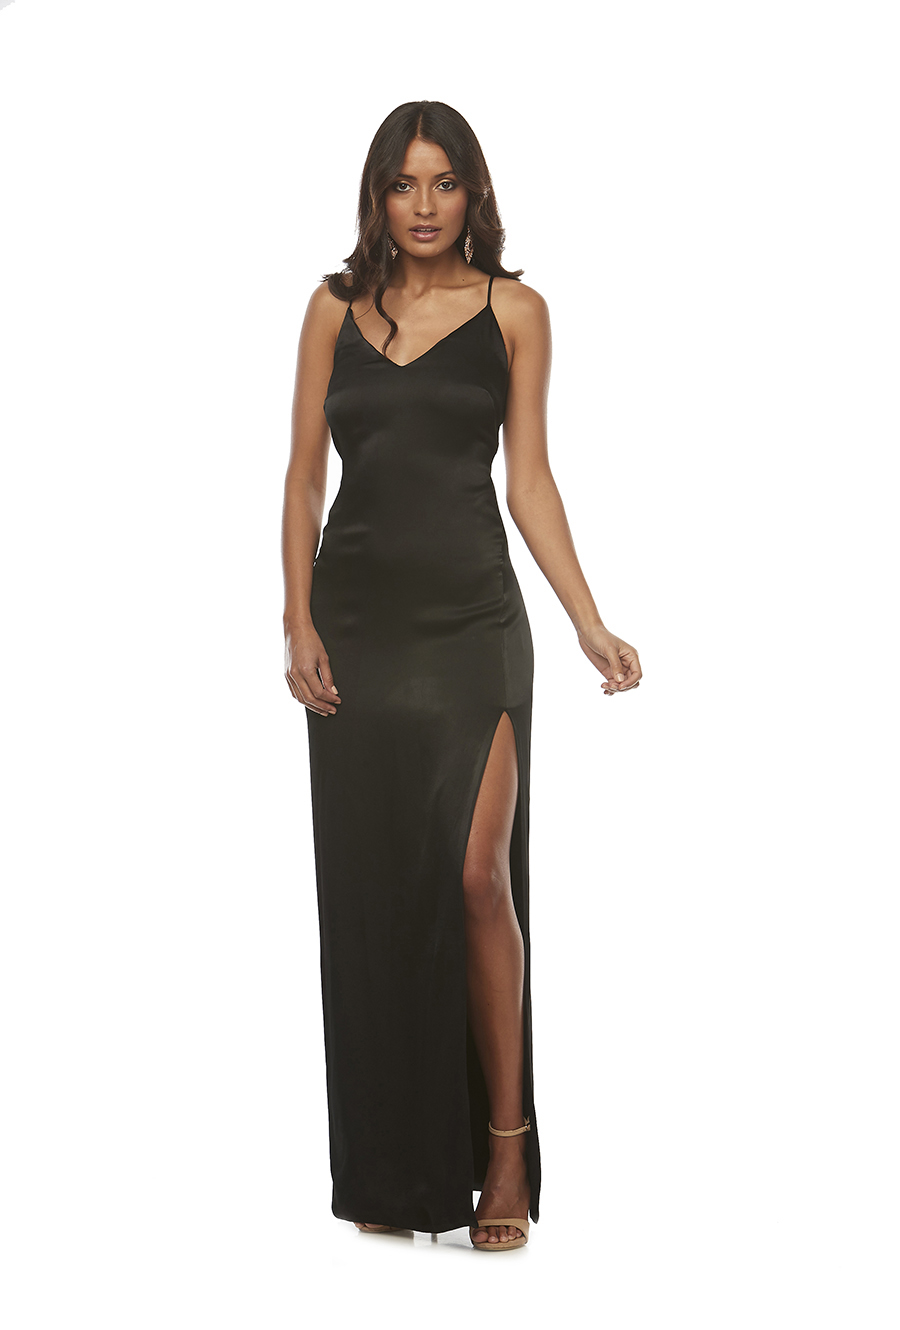 Slinky satin fitted dress with lace up back